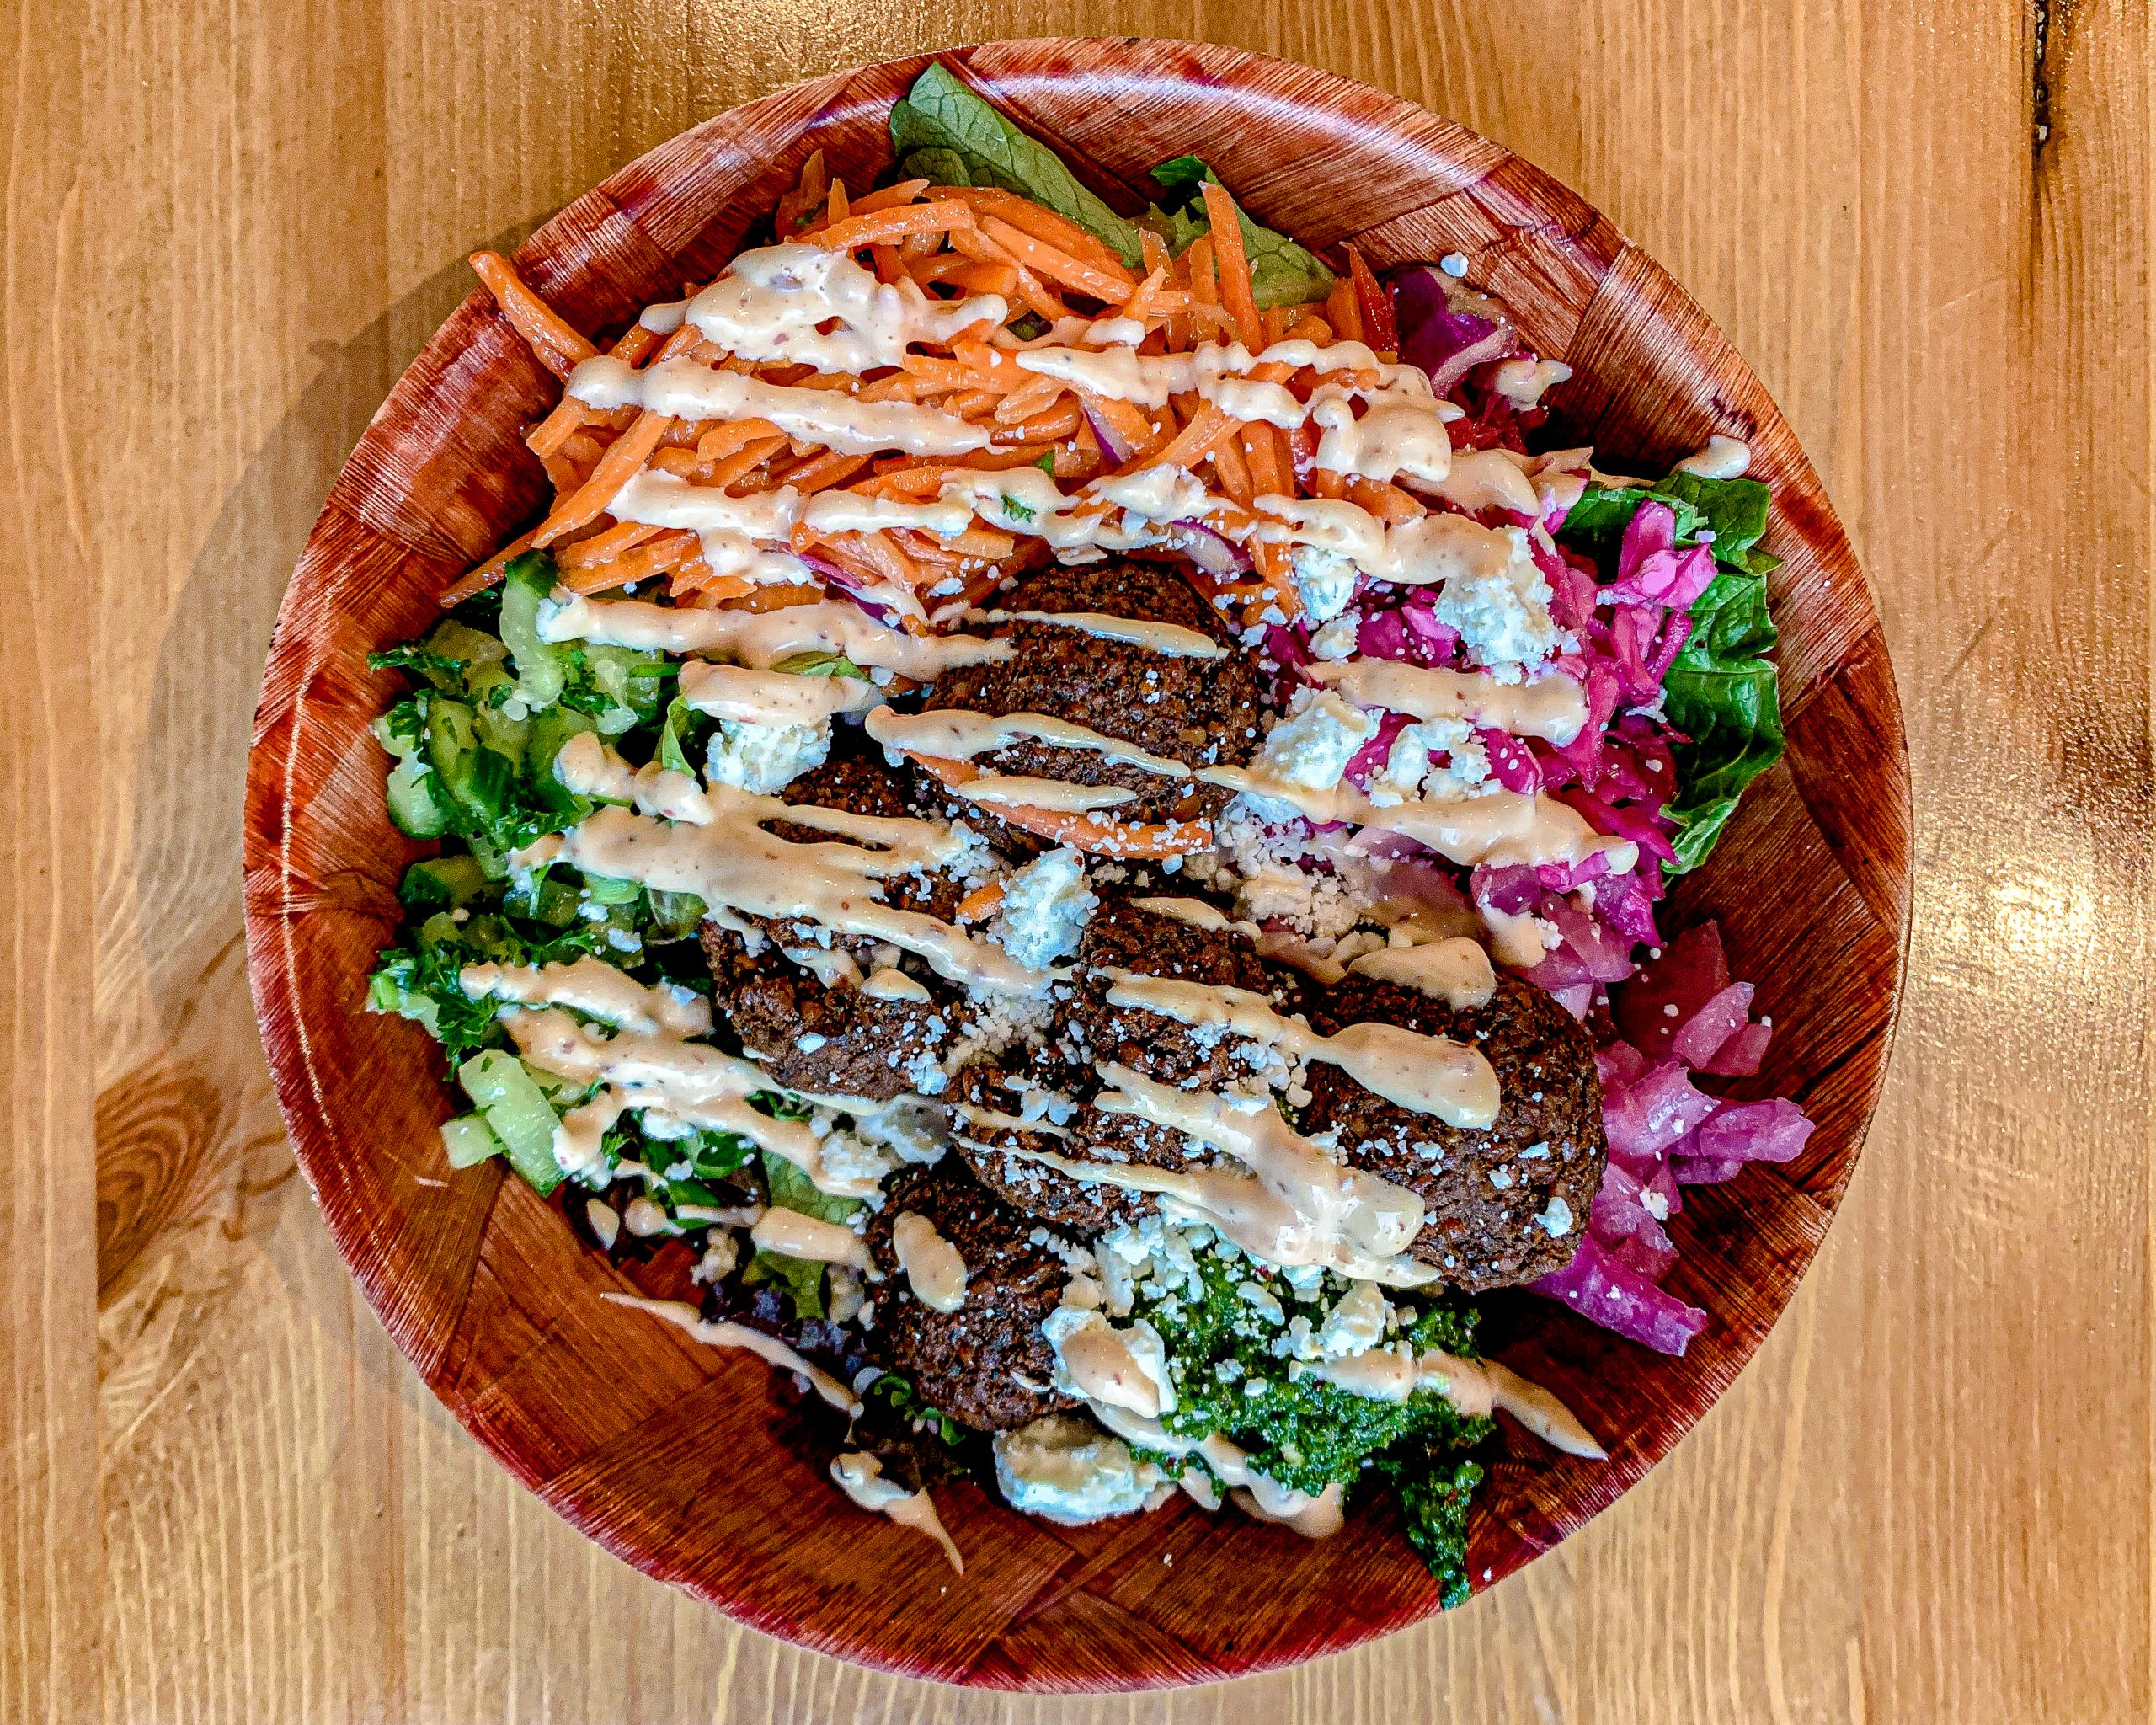 wooden bowl filled with fresh greens and topped with falafel and pickled purple cabbage, drizzled in bright orange and pink tahini sauces